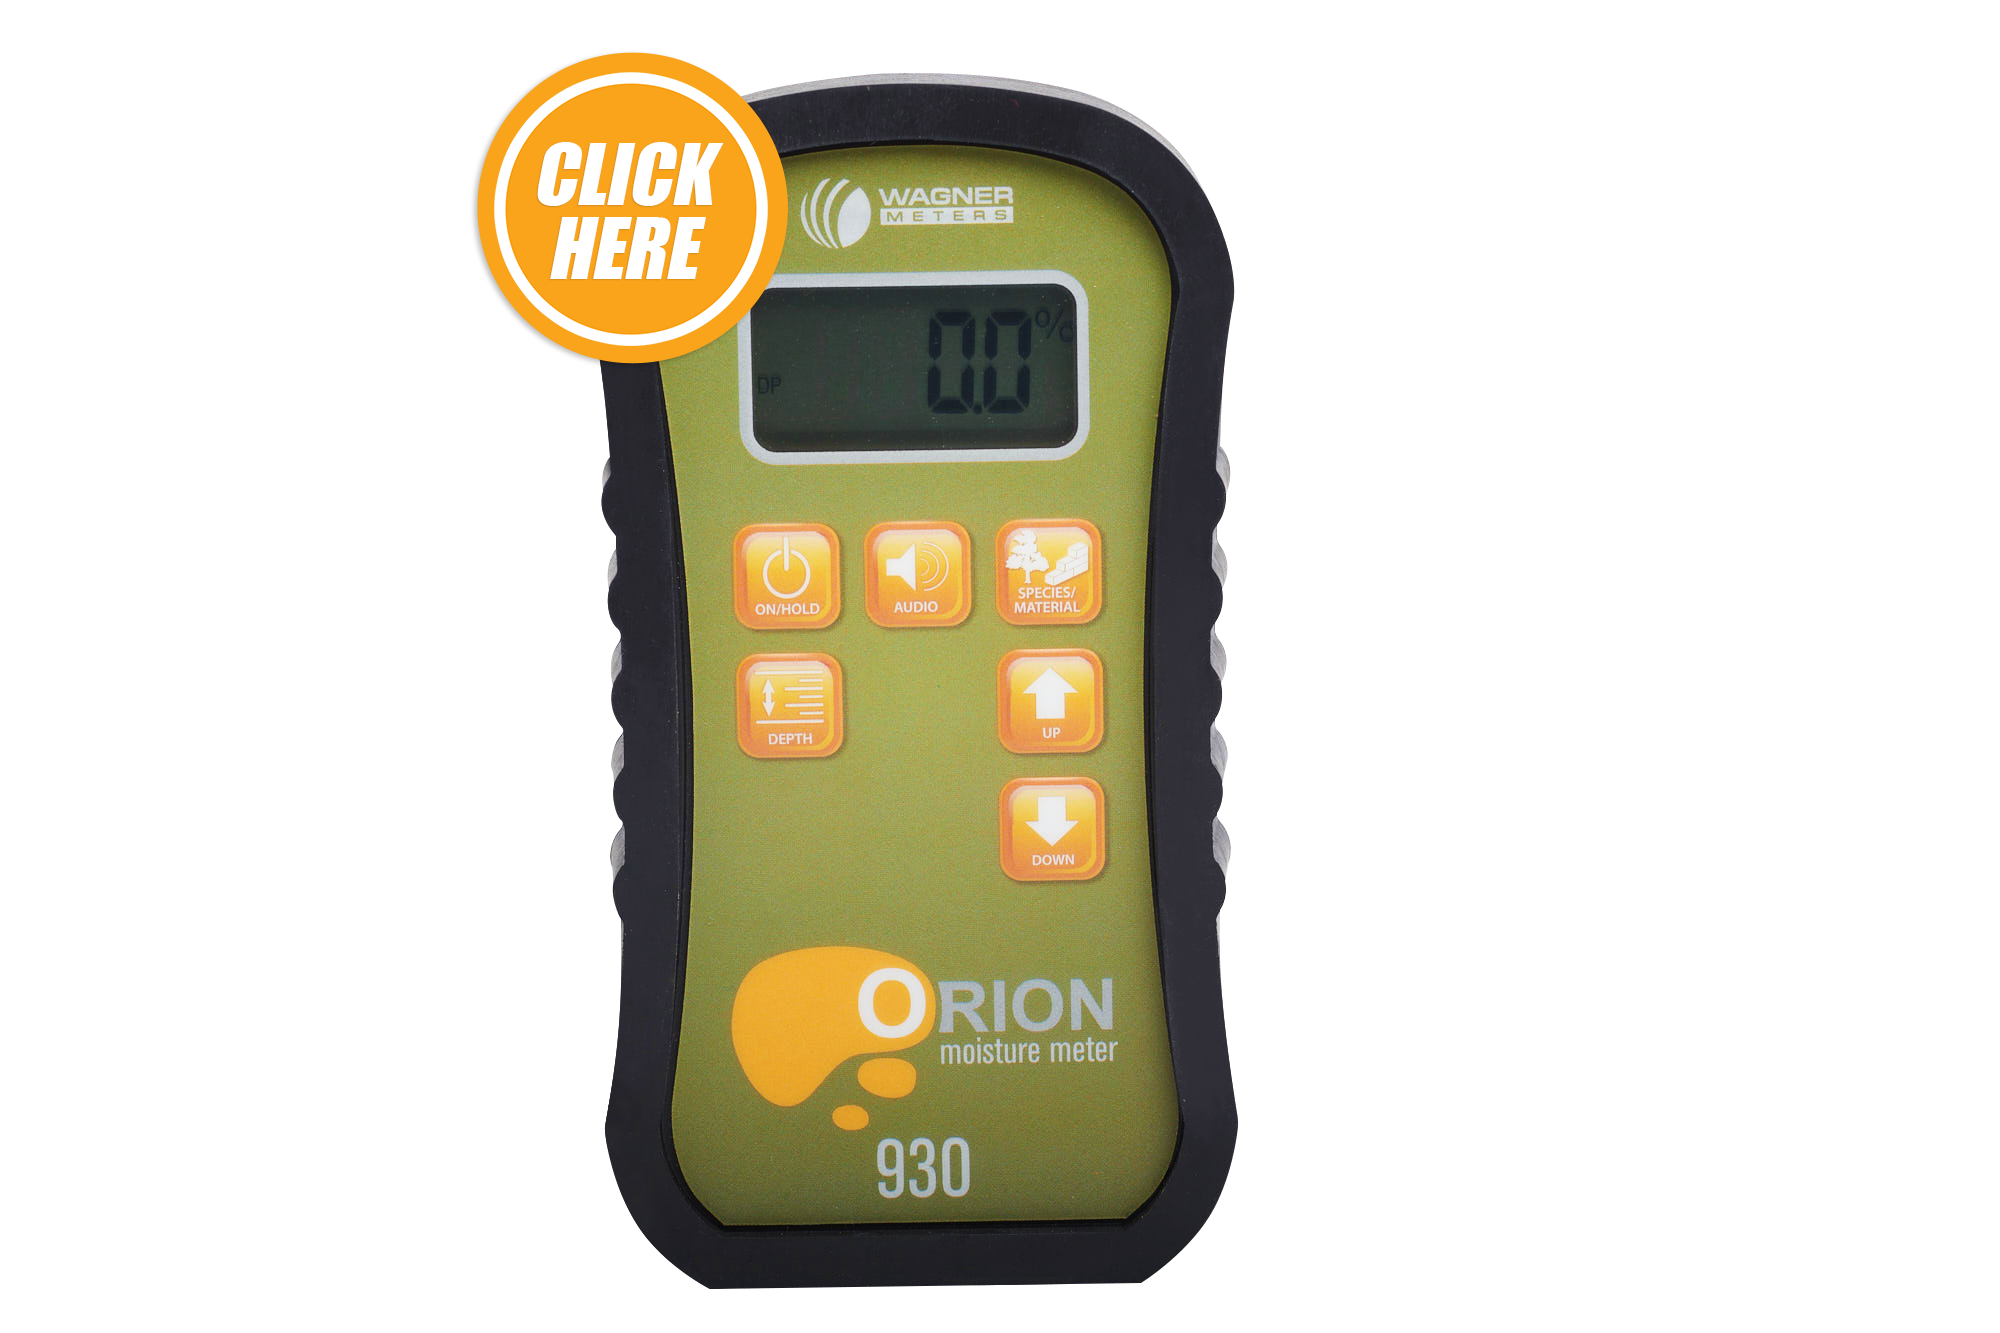 Click here to purchase Orion 930